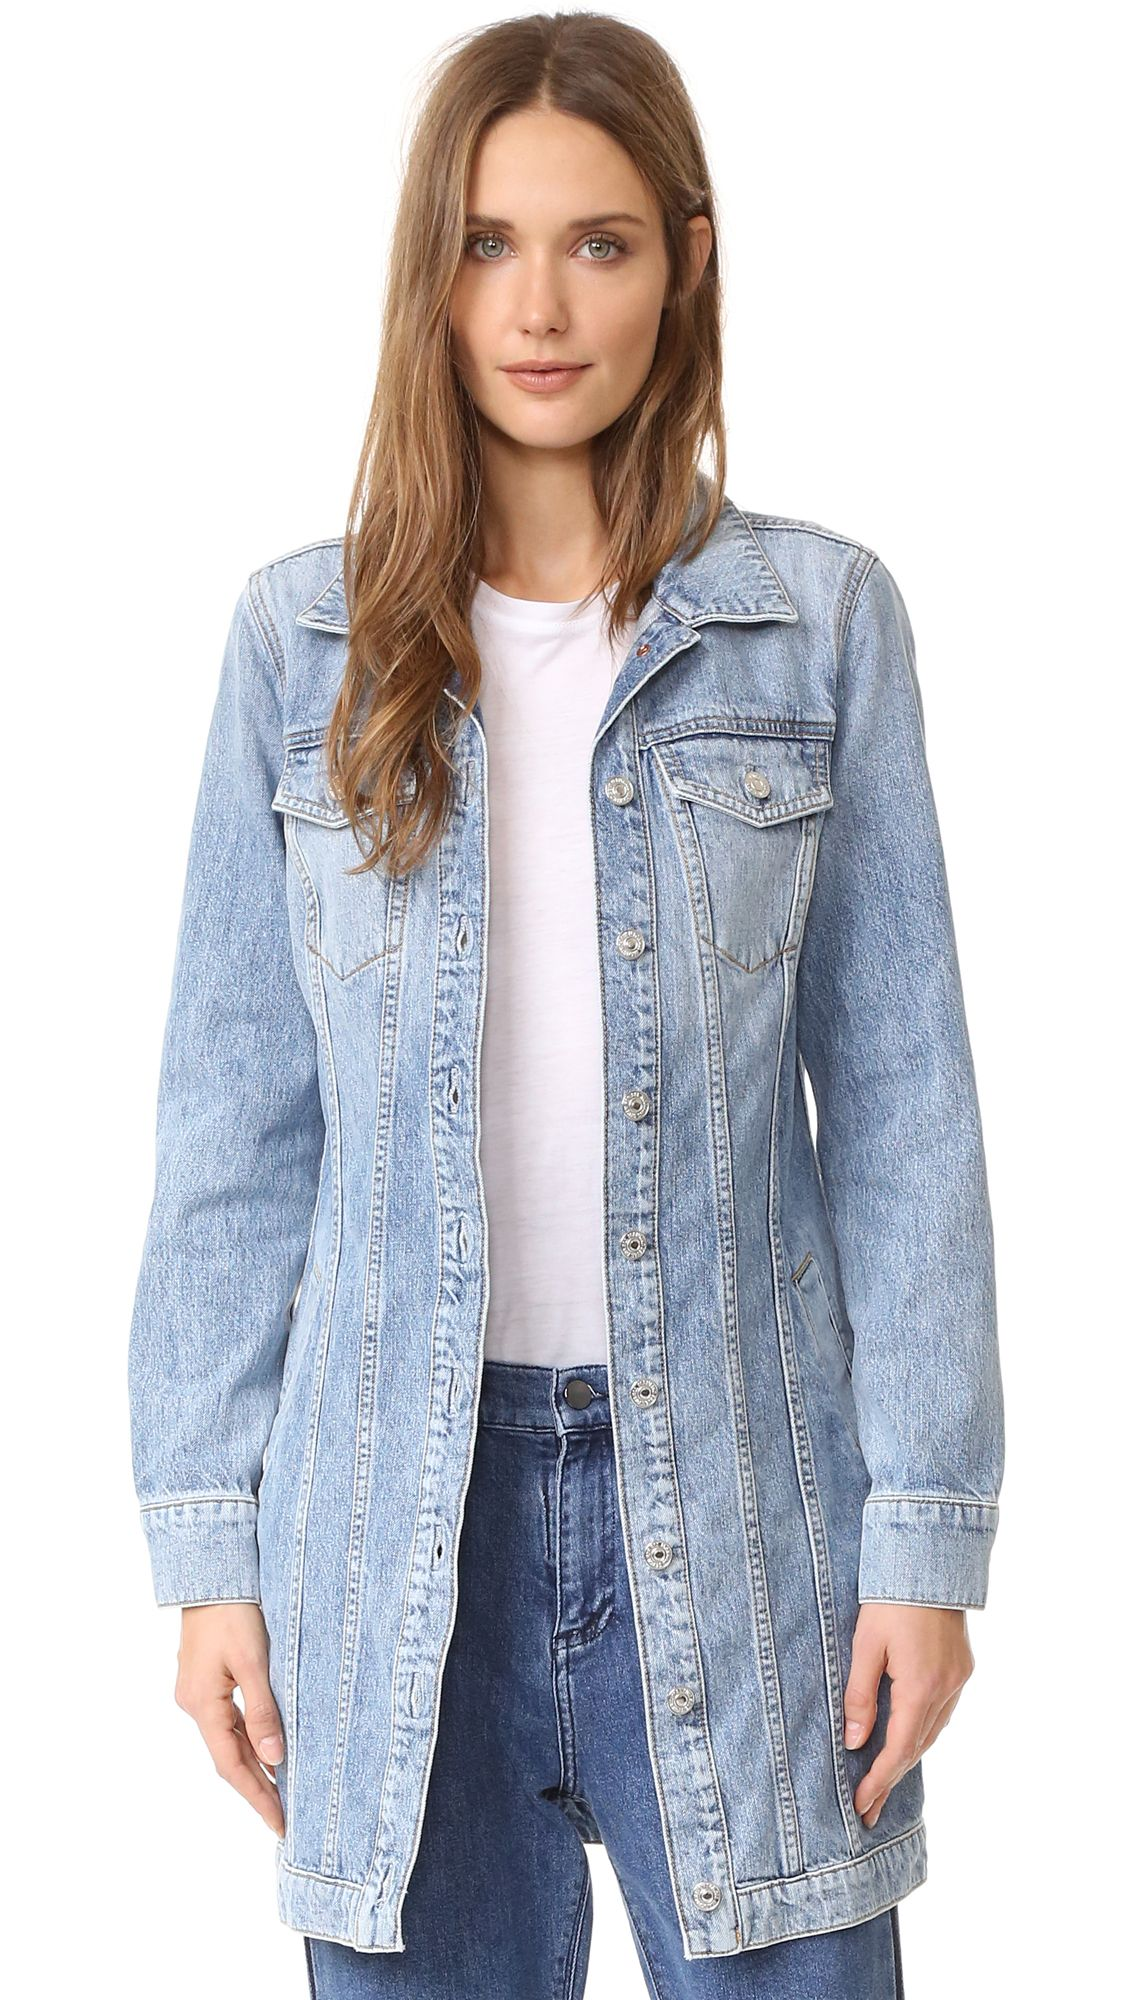 49dc53ebece8 Have you noticed the massive selection of denim jackets in the shops and  online. It's a bit confusing as to which one to buy let a lone which will  suit your ...